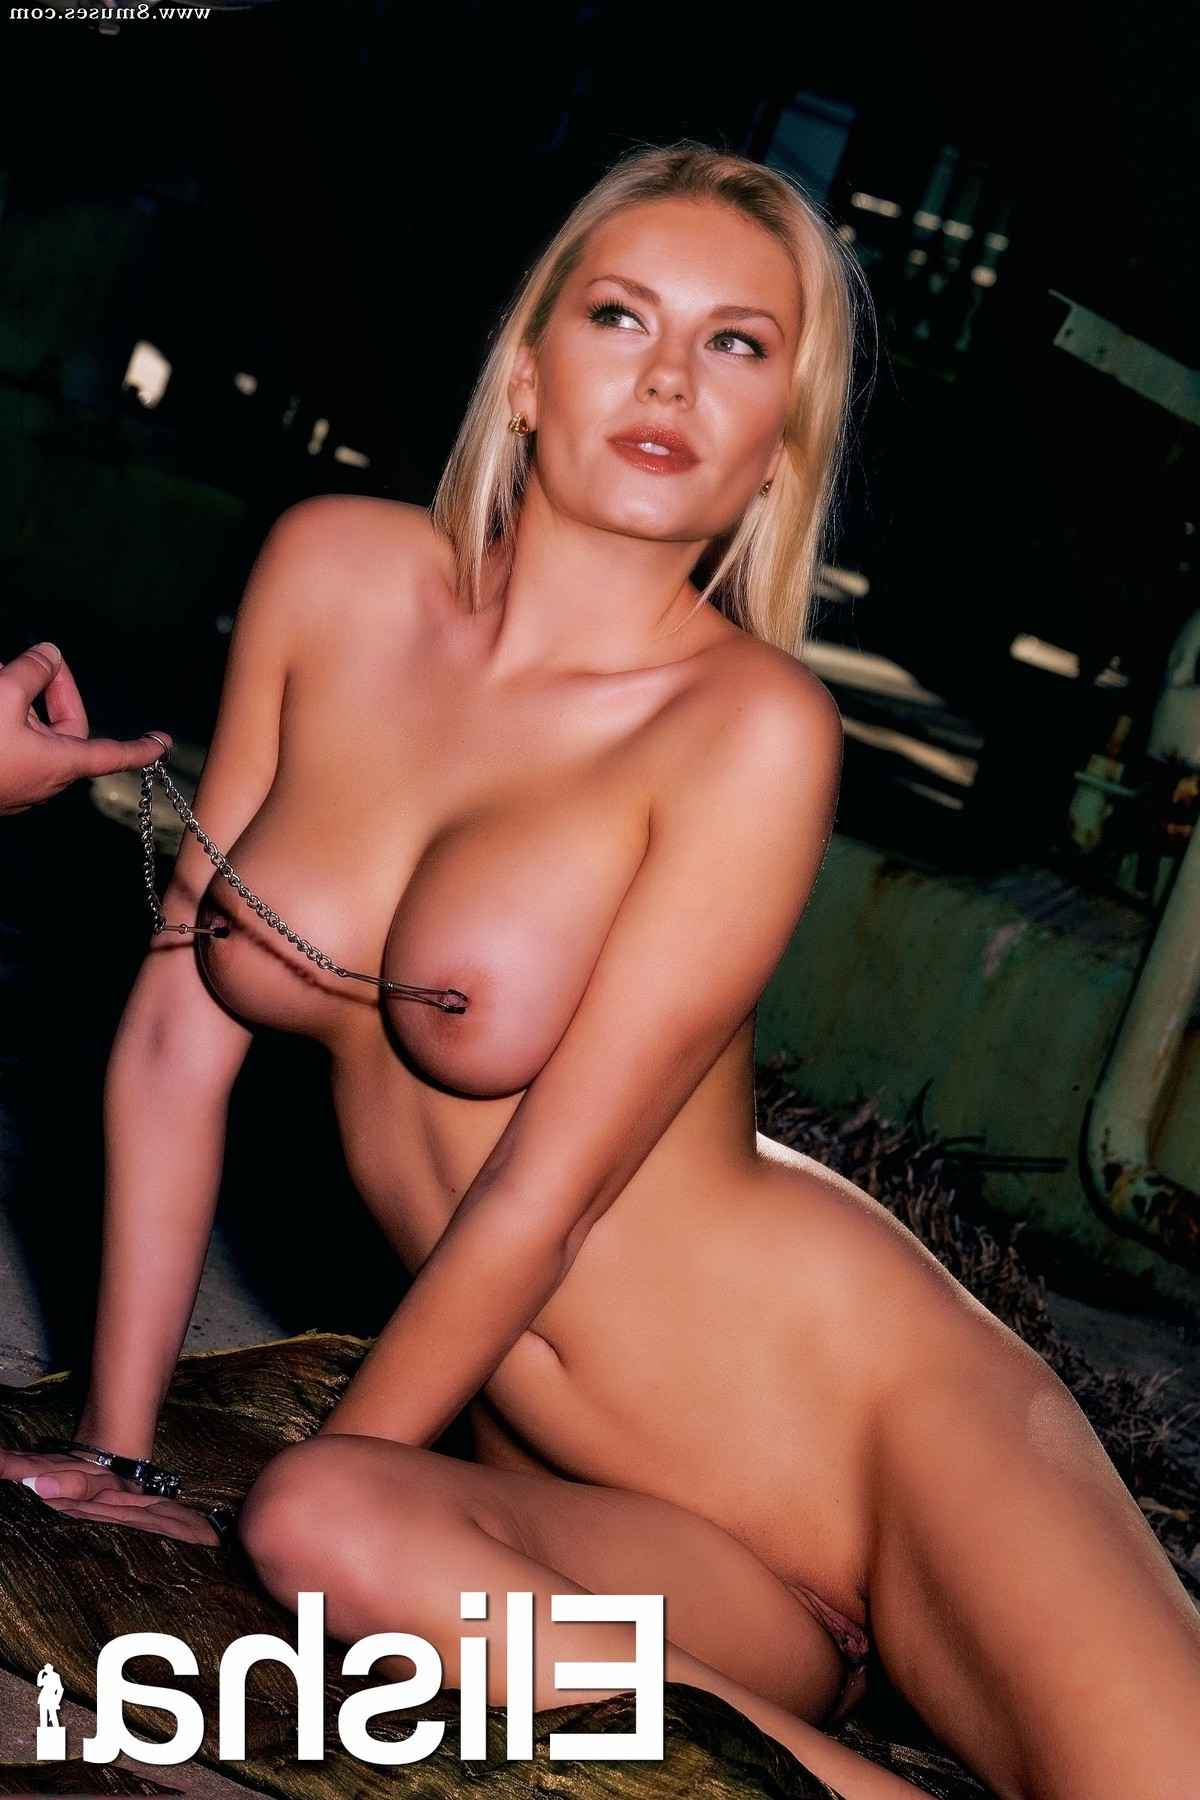 Fake-Celebrities-Sex-Pictures/Elisha-Cuthbert Elisha_Cuthbert__8muses_-_Sex_and_Porn_Comics_286.jpg